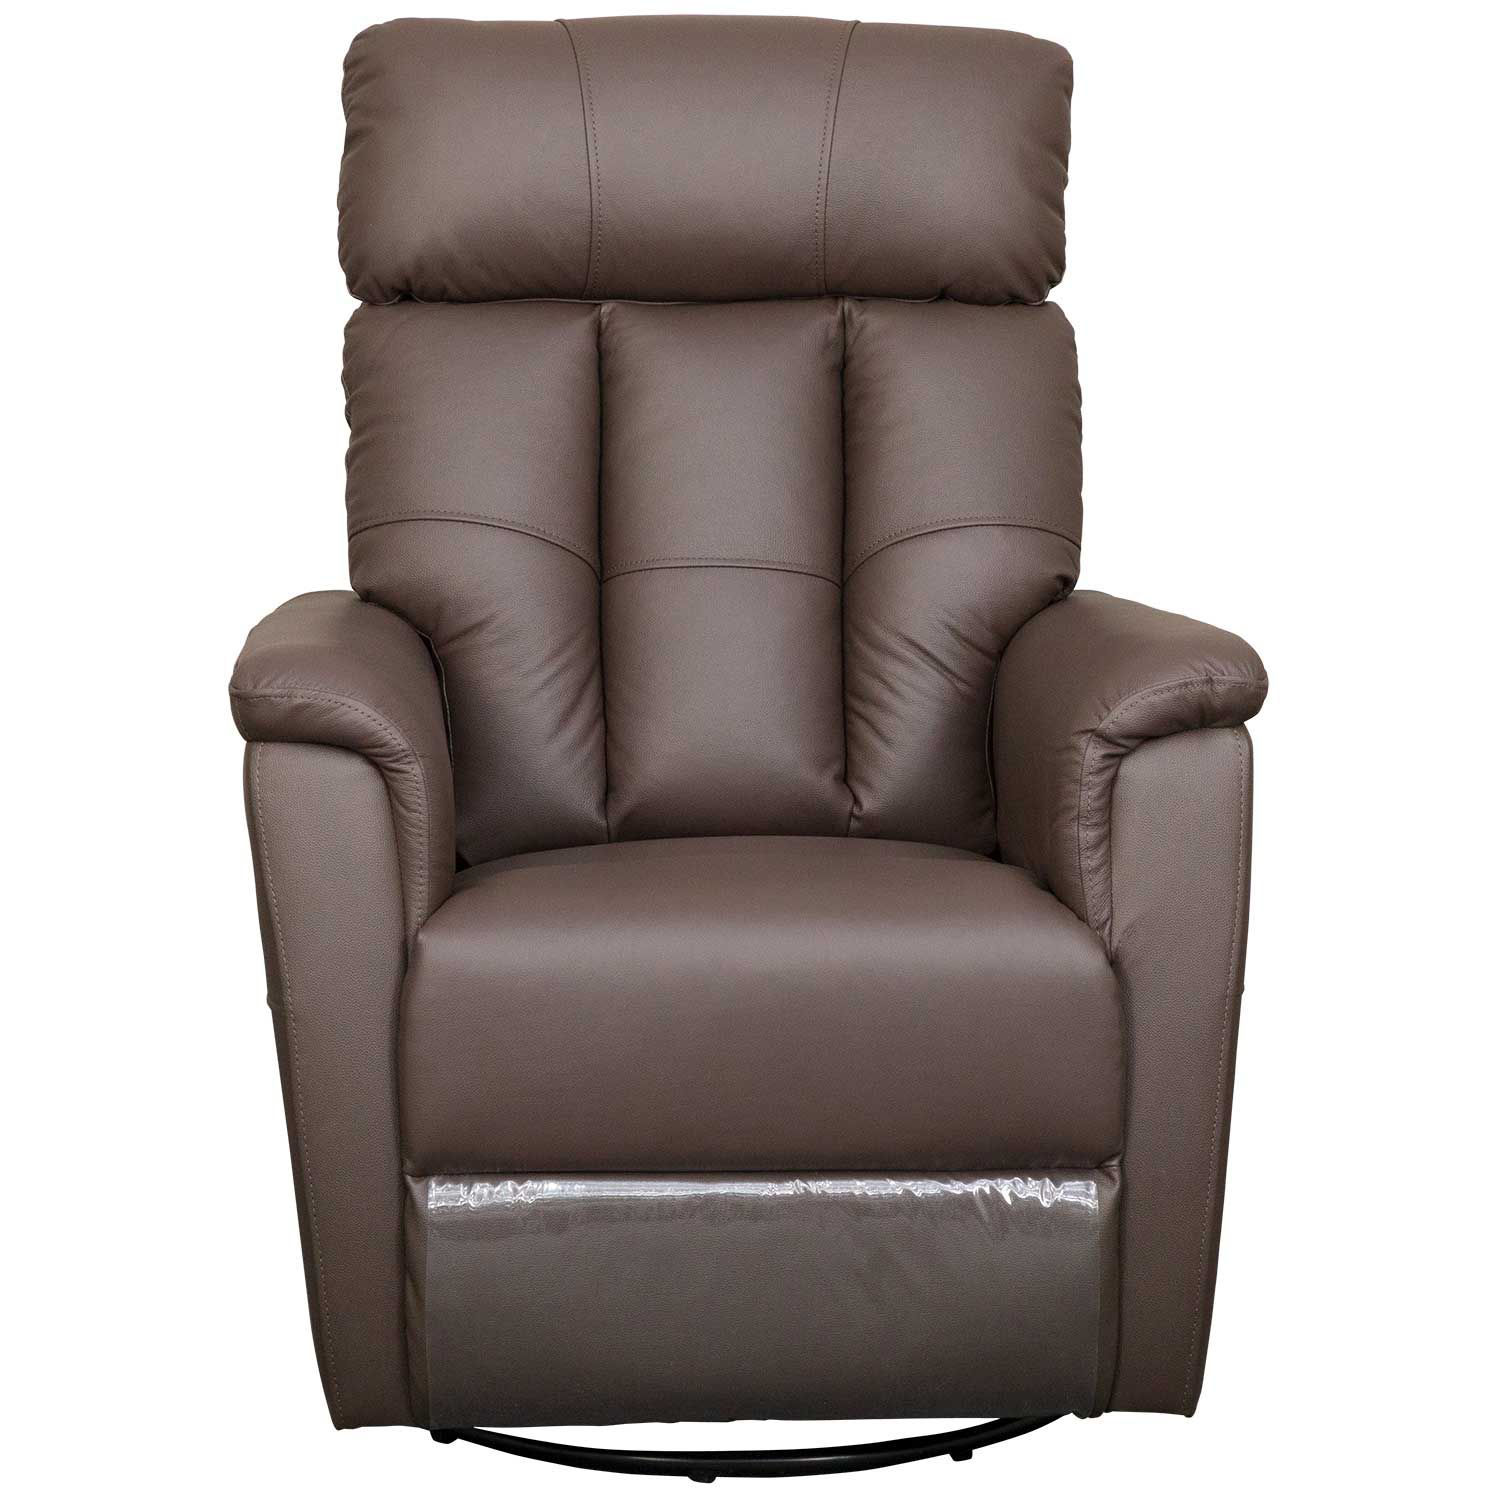 Picture of Remus Brown Leather Power Swivel Rocker Recliner